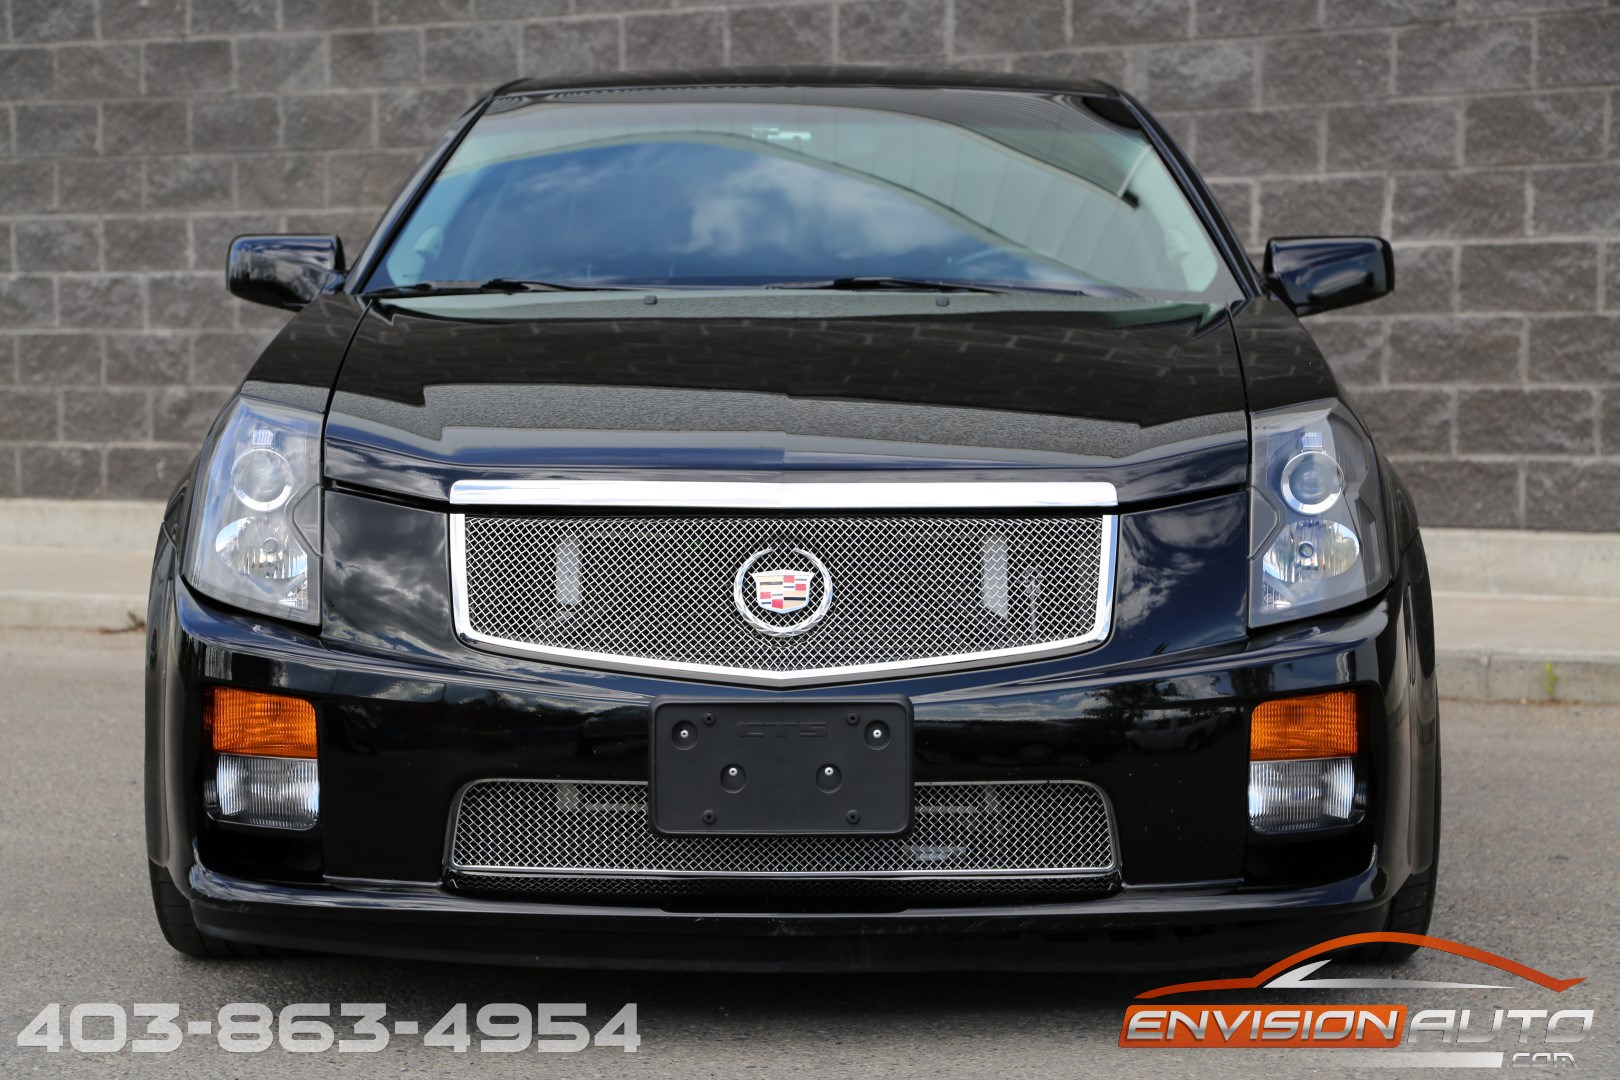 2005 cadillac cts v sedan 6 speed manual 470 rwhp envision auto. Black Bedroom Furniture Sets. Home Design Ideas